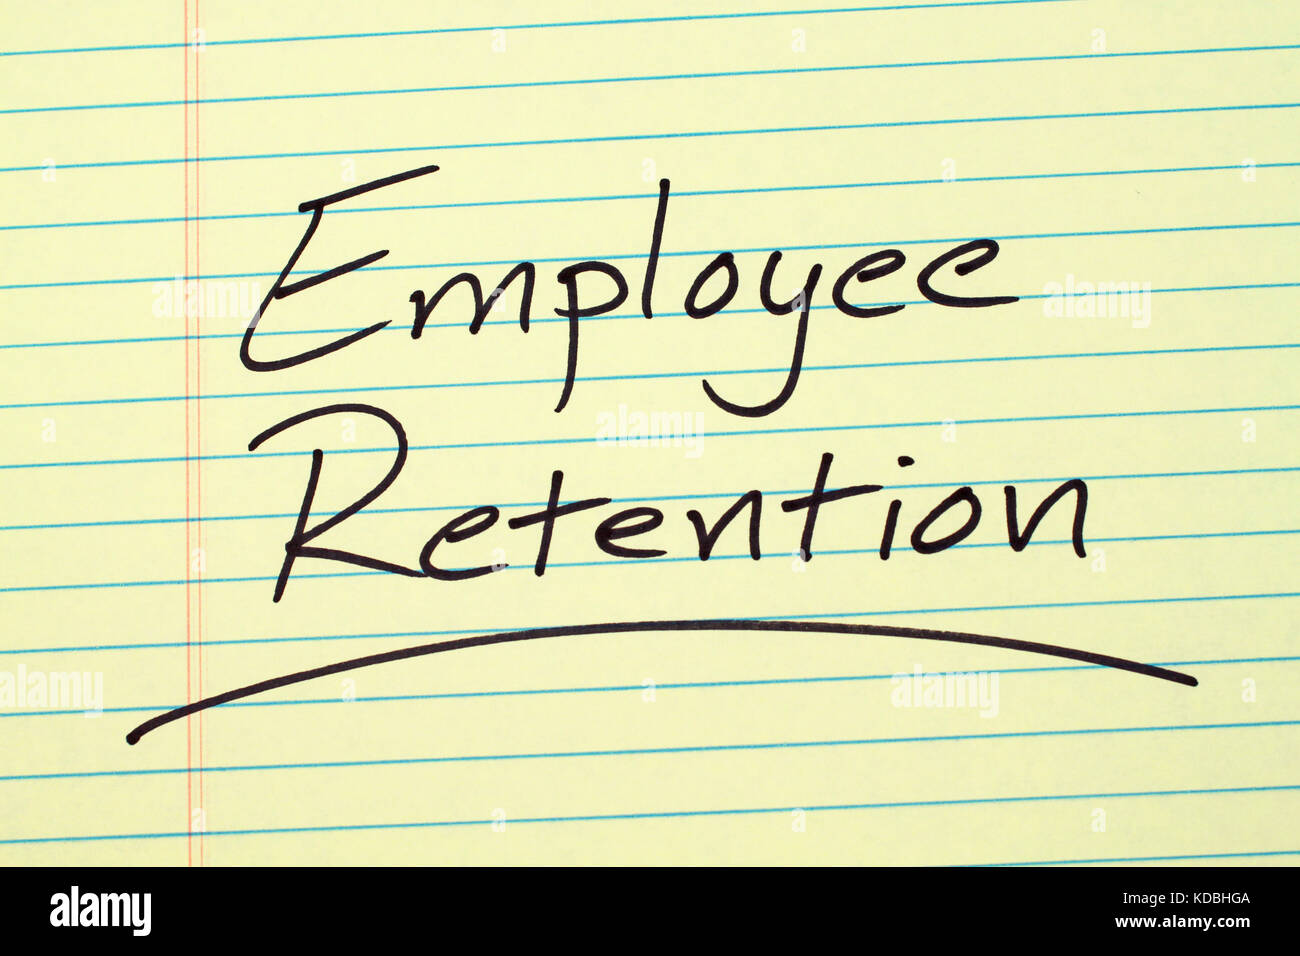 The word 'Employee Retention' underlined on a yellow legal pad - Stock Image